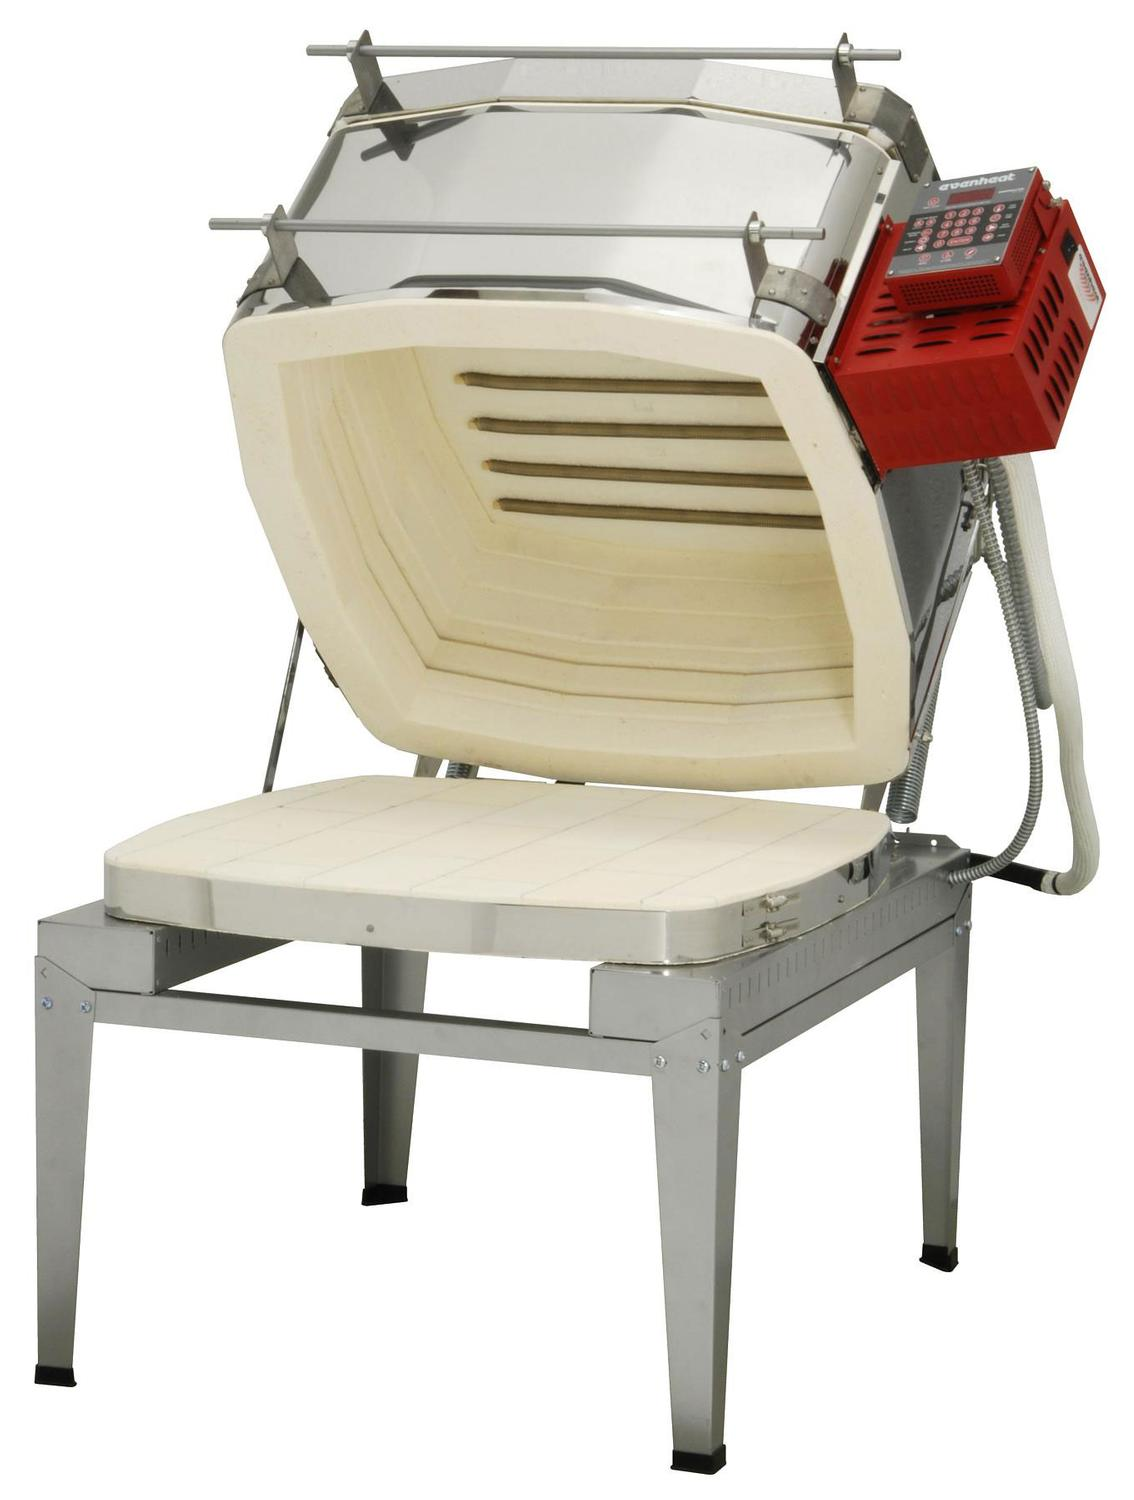 Studio Pro 24 Kiln with RampMaster with Express Mode and Furniture Kit